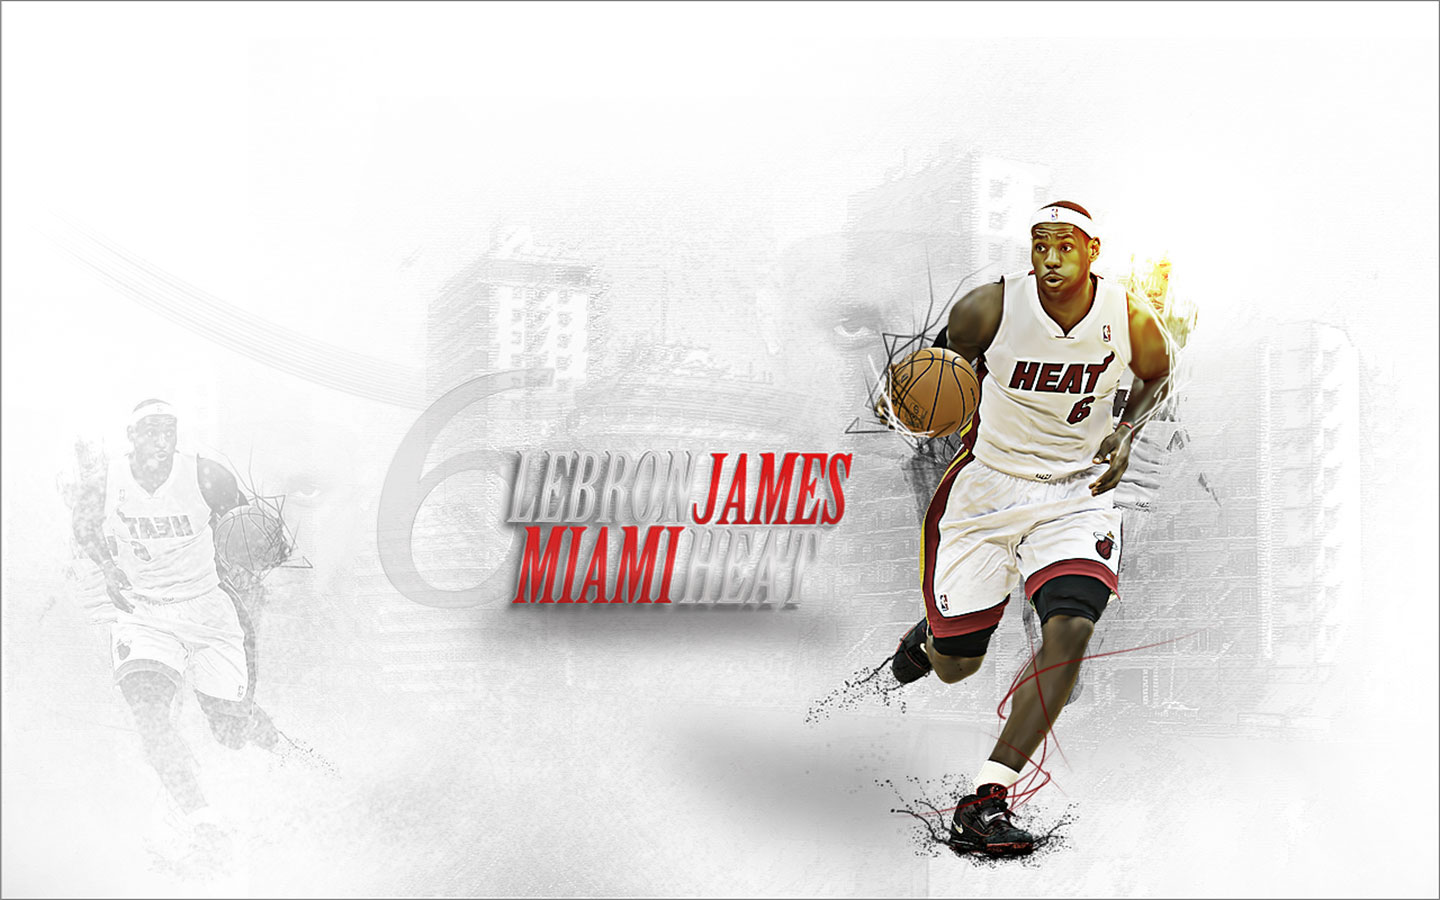 http://4.bp.blogspot.com/_FUqunw1CcGY/TQ5M2B-7XKI/AAAAAAAAAeE/oB1jZpV5OXs/s1600/LeBron-James-Miami-Heat-Widescreen-Wallpaper.jpg